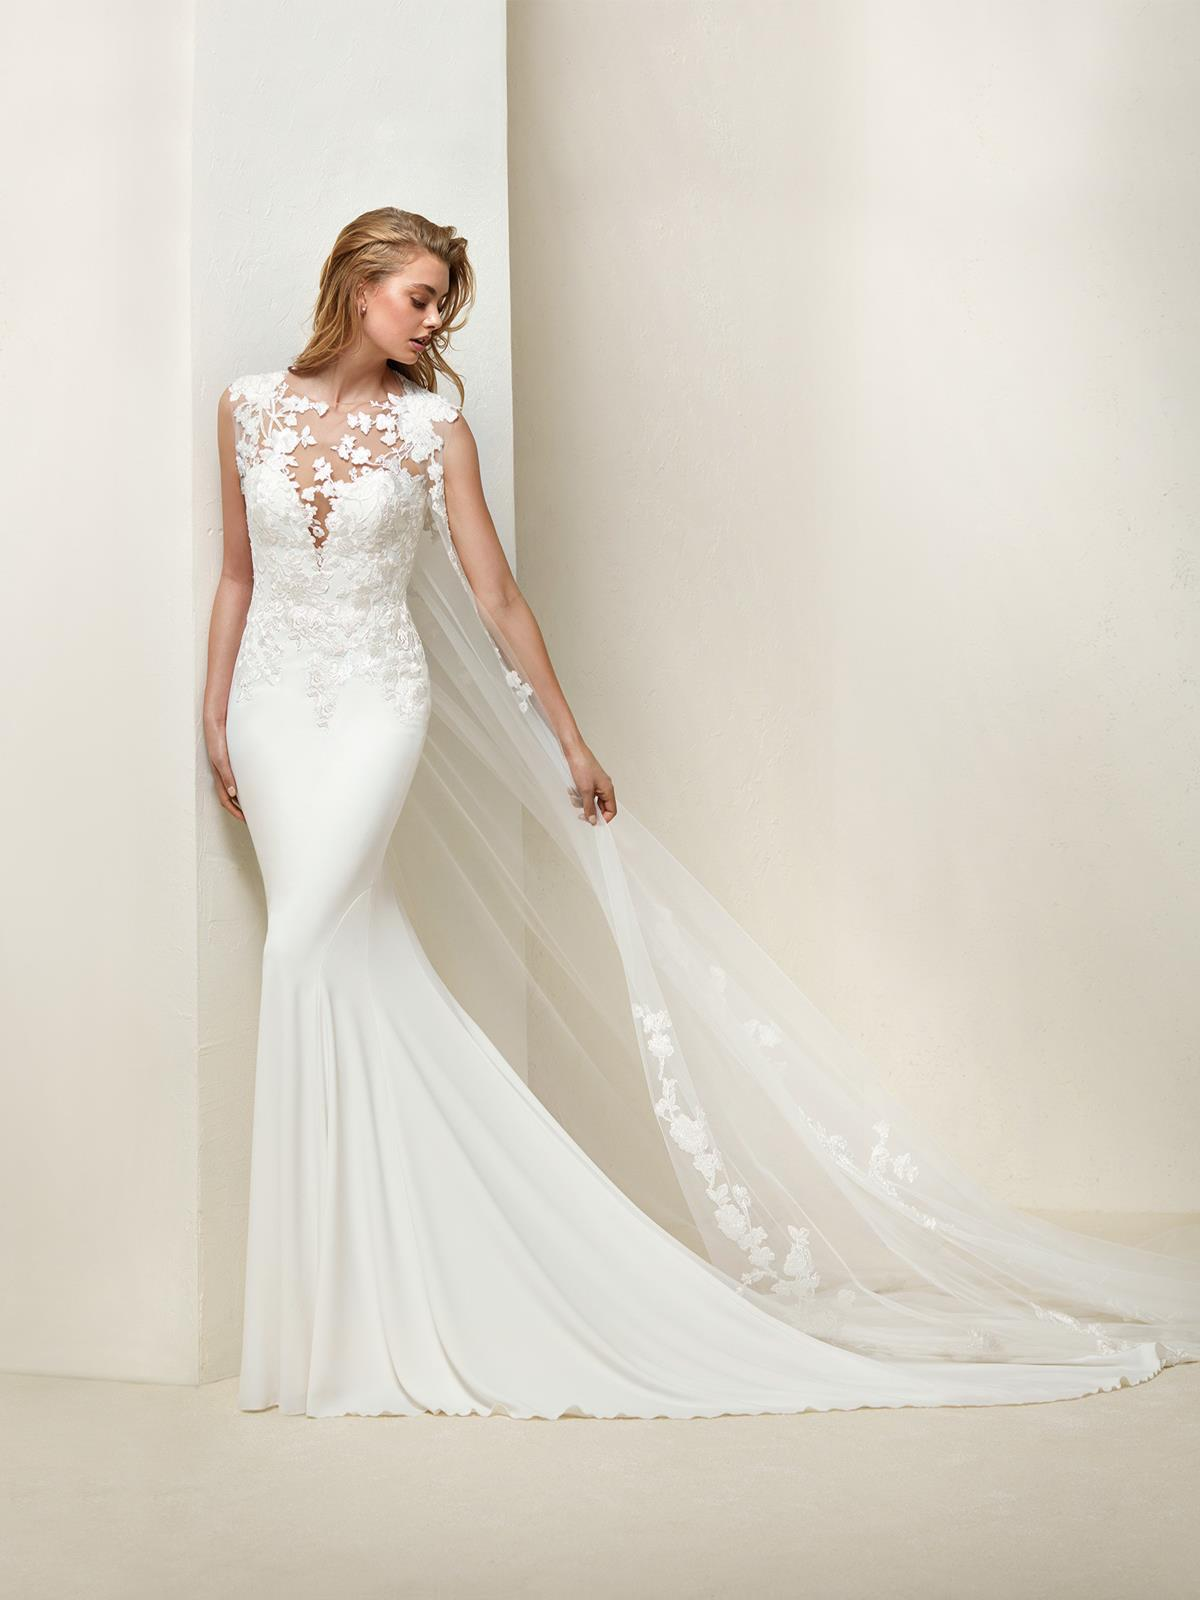 Bridals By Natalie | Best Bridal Store in Alexandria, VA, D.C, MD